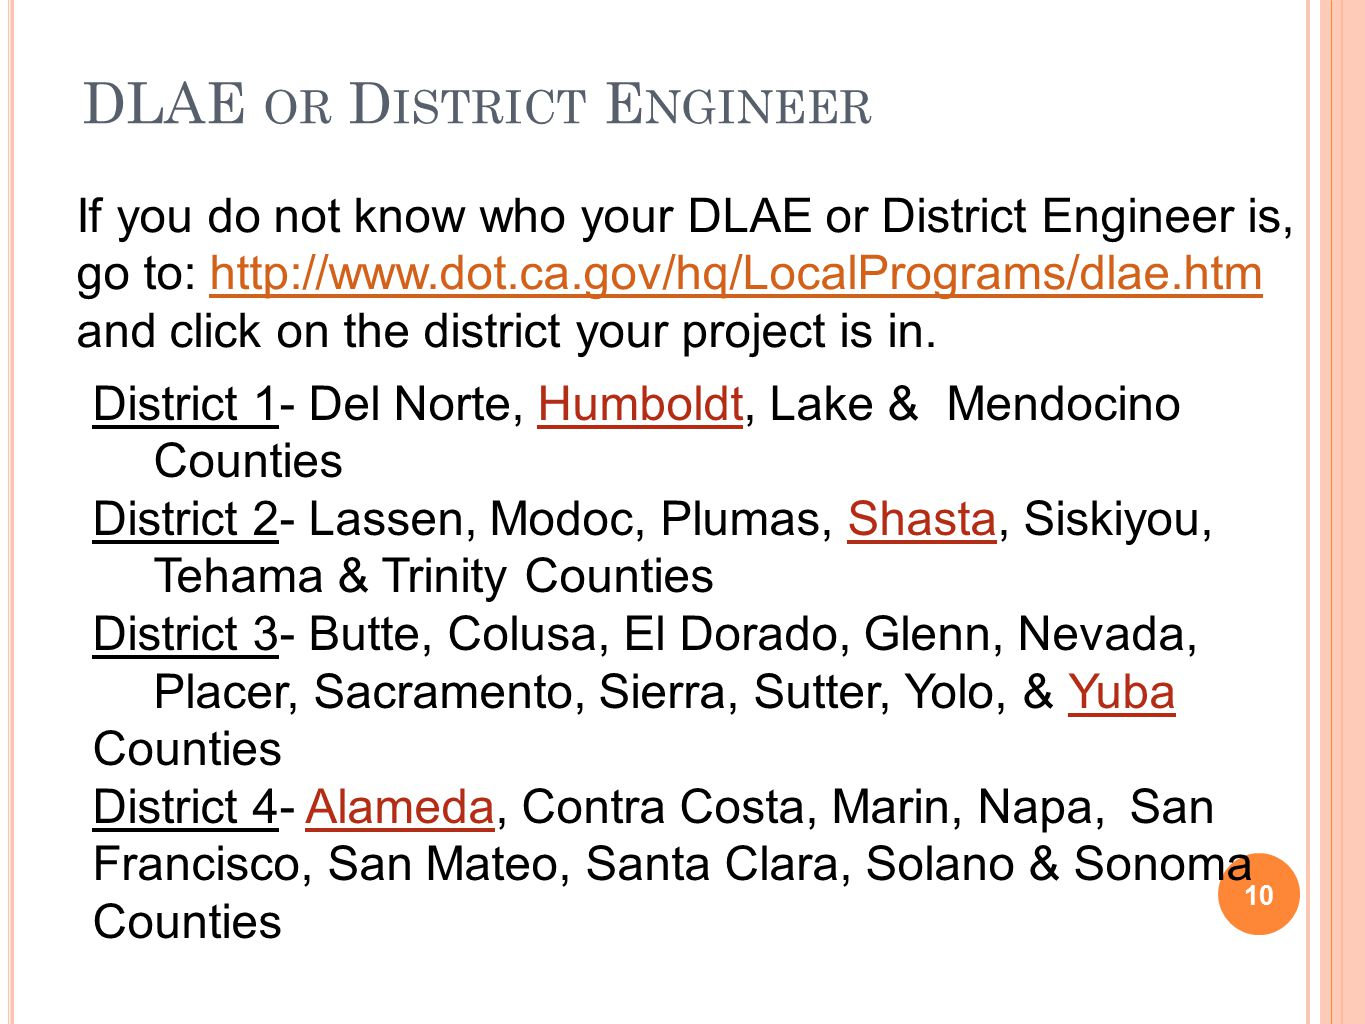 DLAE OR D ISTRICT E NGINEER 10 If you do not know who your DLAE or District Engineer is, go to: http://www.dot.ca.gov/hq/LocalPrograms/dlae.htm and click on the district your project is in.http://www.dot.ca.gov/hq/LocalPrograms/dlae.htm District 1- Del Norte, Humboldt, Lake & Mendocino Counties District 2- Lassen, Modoc, Plumas, Shasta, Siskiyou, Tehama & Trinity Counties District 3- Butte, Colusa, El Dorado, Glenn, Nevada, Placer, Sacramento, Sierra, Sutter, Yolo, & Yuba Counties District 4- Alameda, Contra Costa, Marin, Napa, San Francisco, San Mateo, Santa Clara, Solano & Sonoma Counties